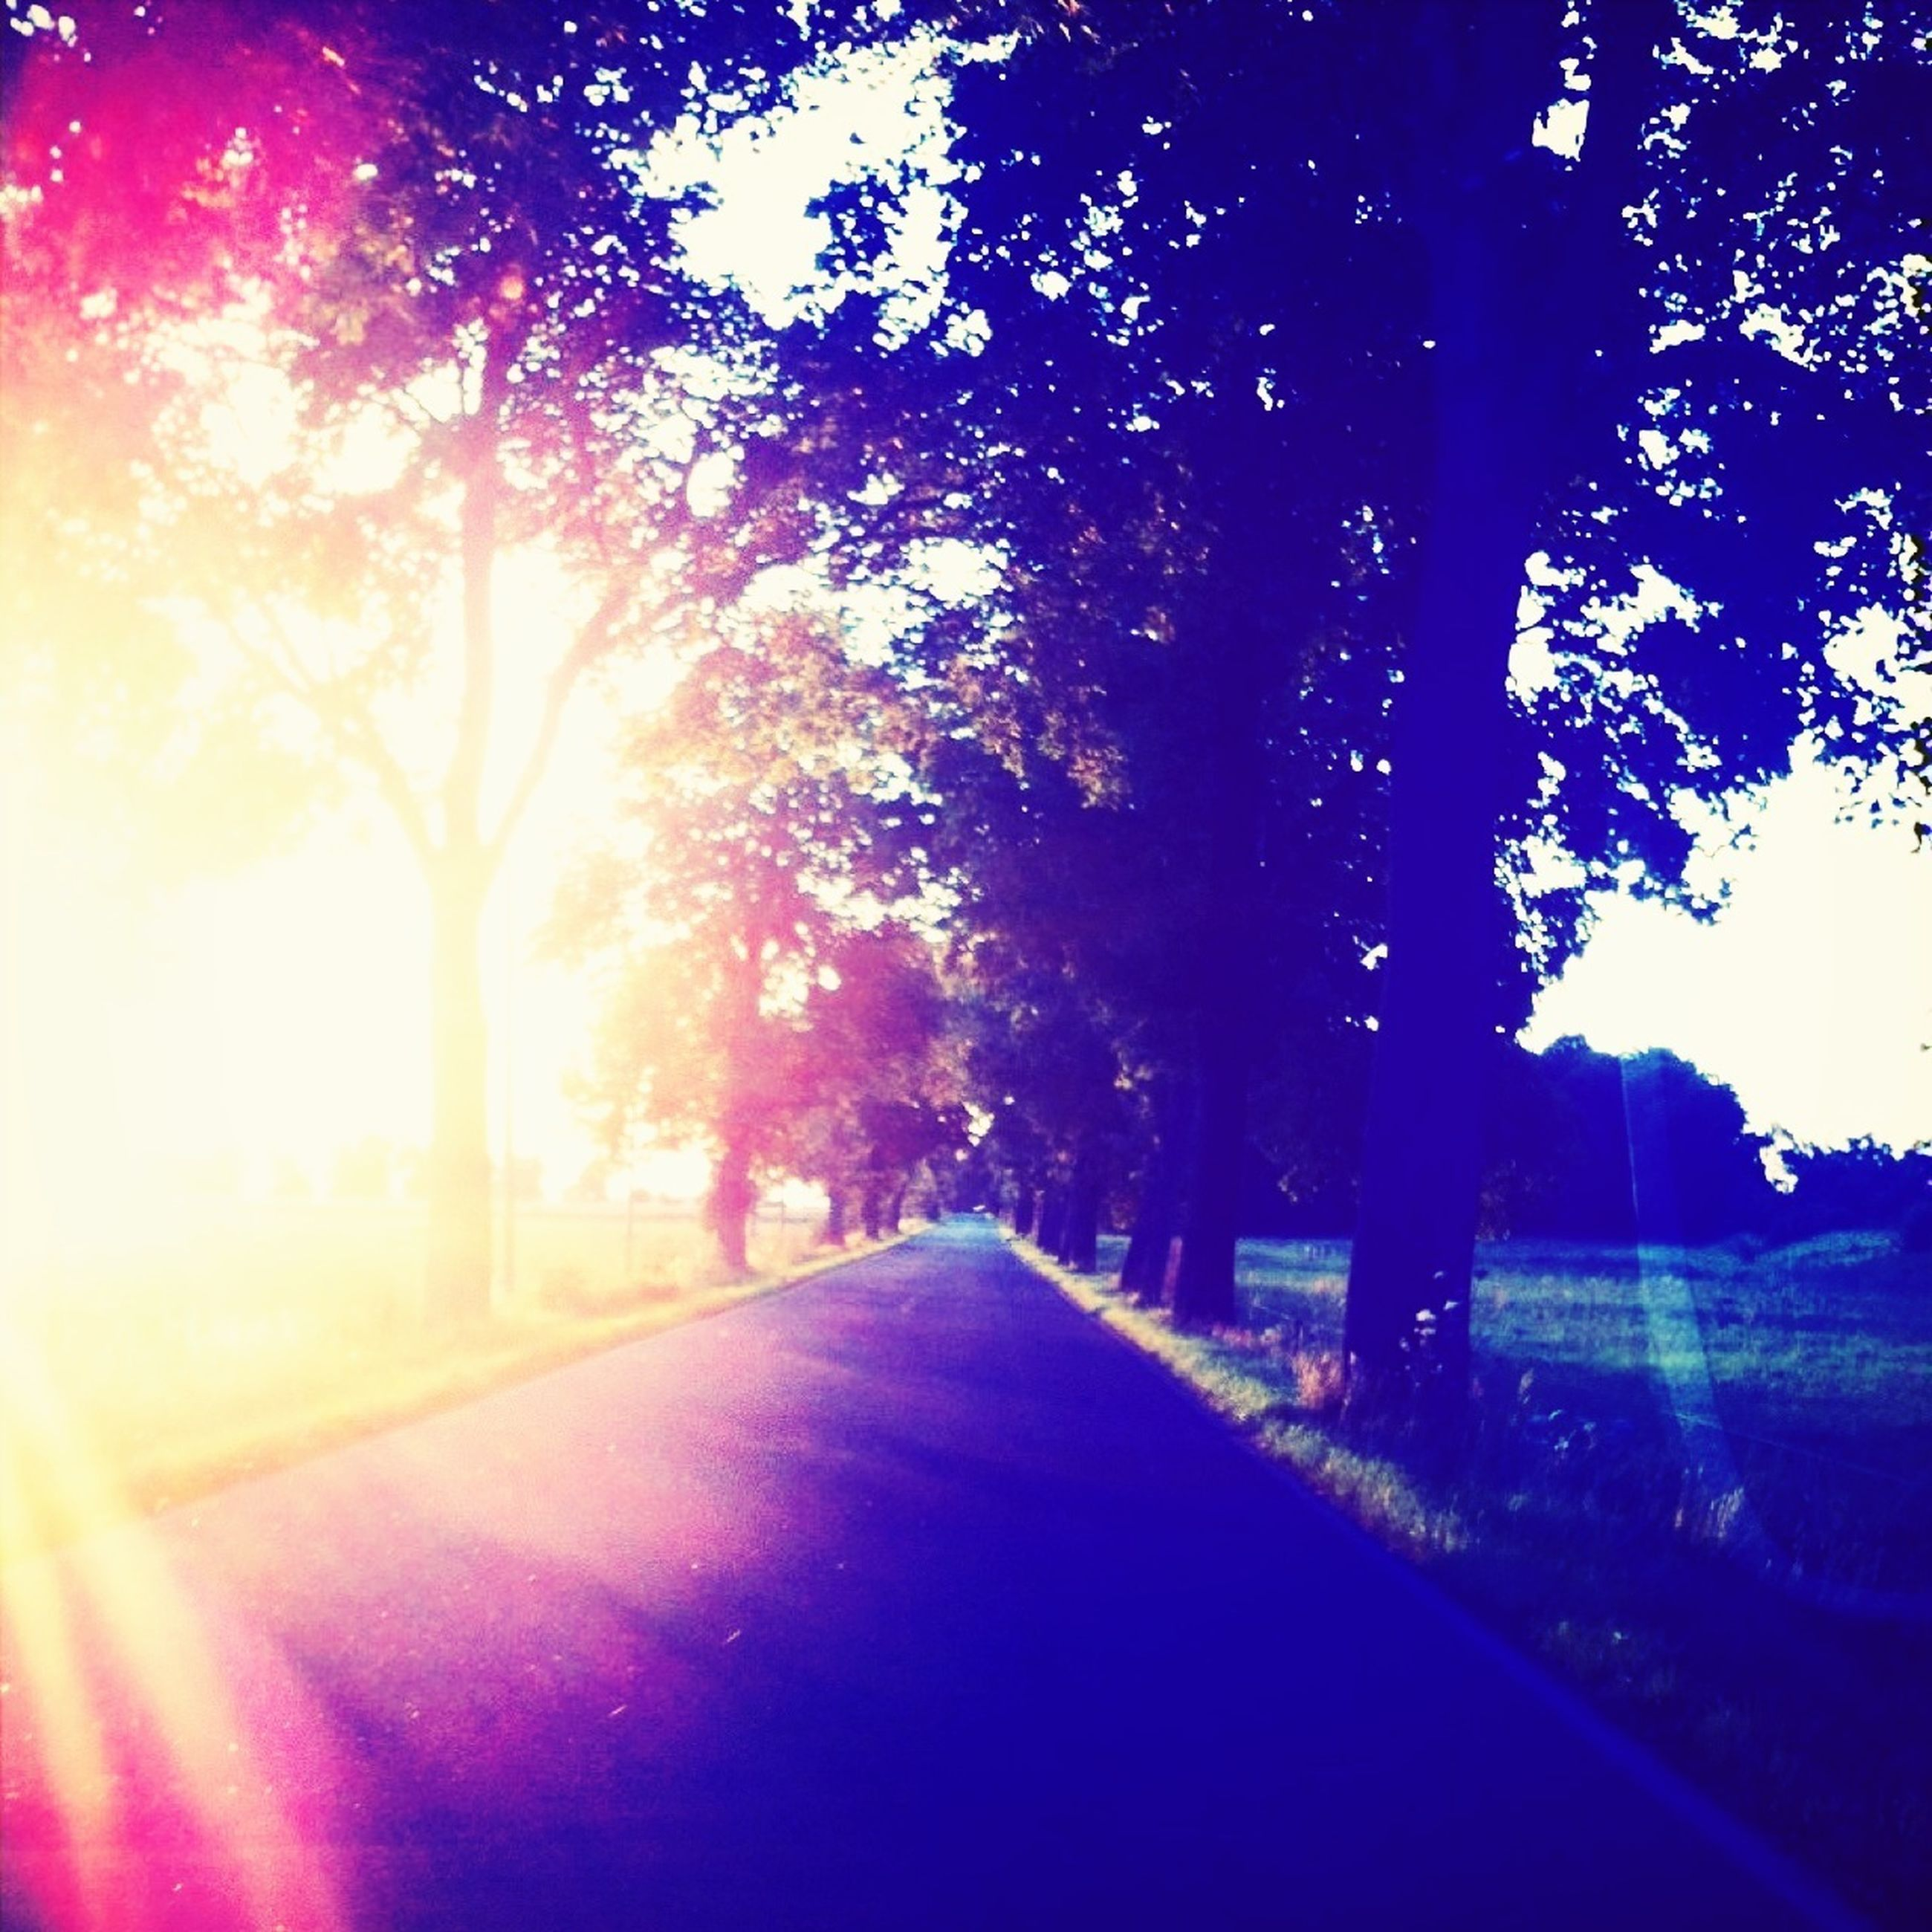 the way forward, tree, road, diminishing perspective, transportation, sunlight, vanishing point, sun, street, sunbeam, lens flare, empty road, tranquility, nature, empty, country road, tranquil scene, sky, long, no people